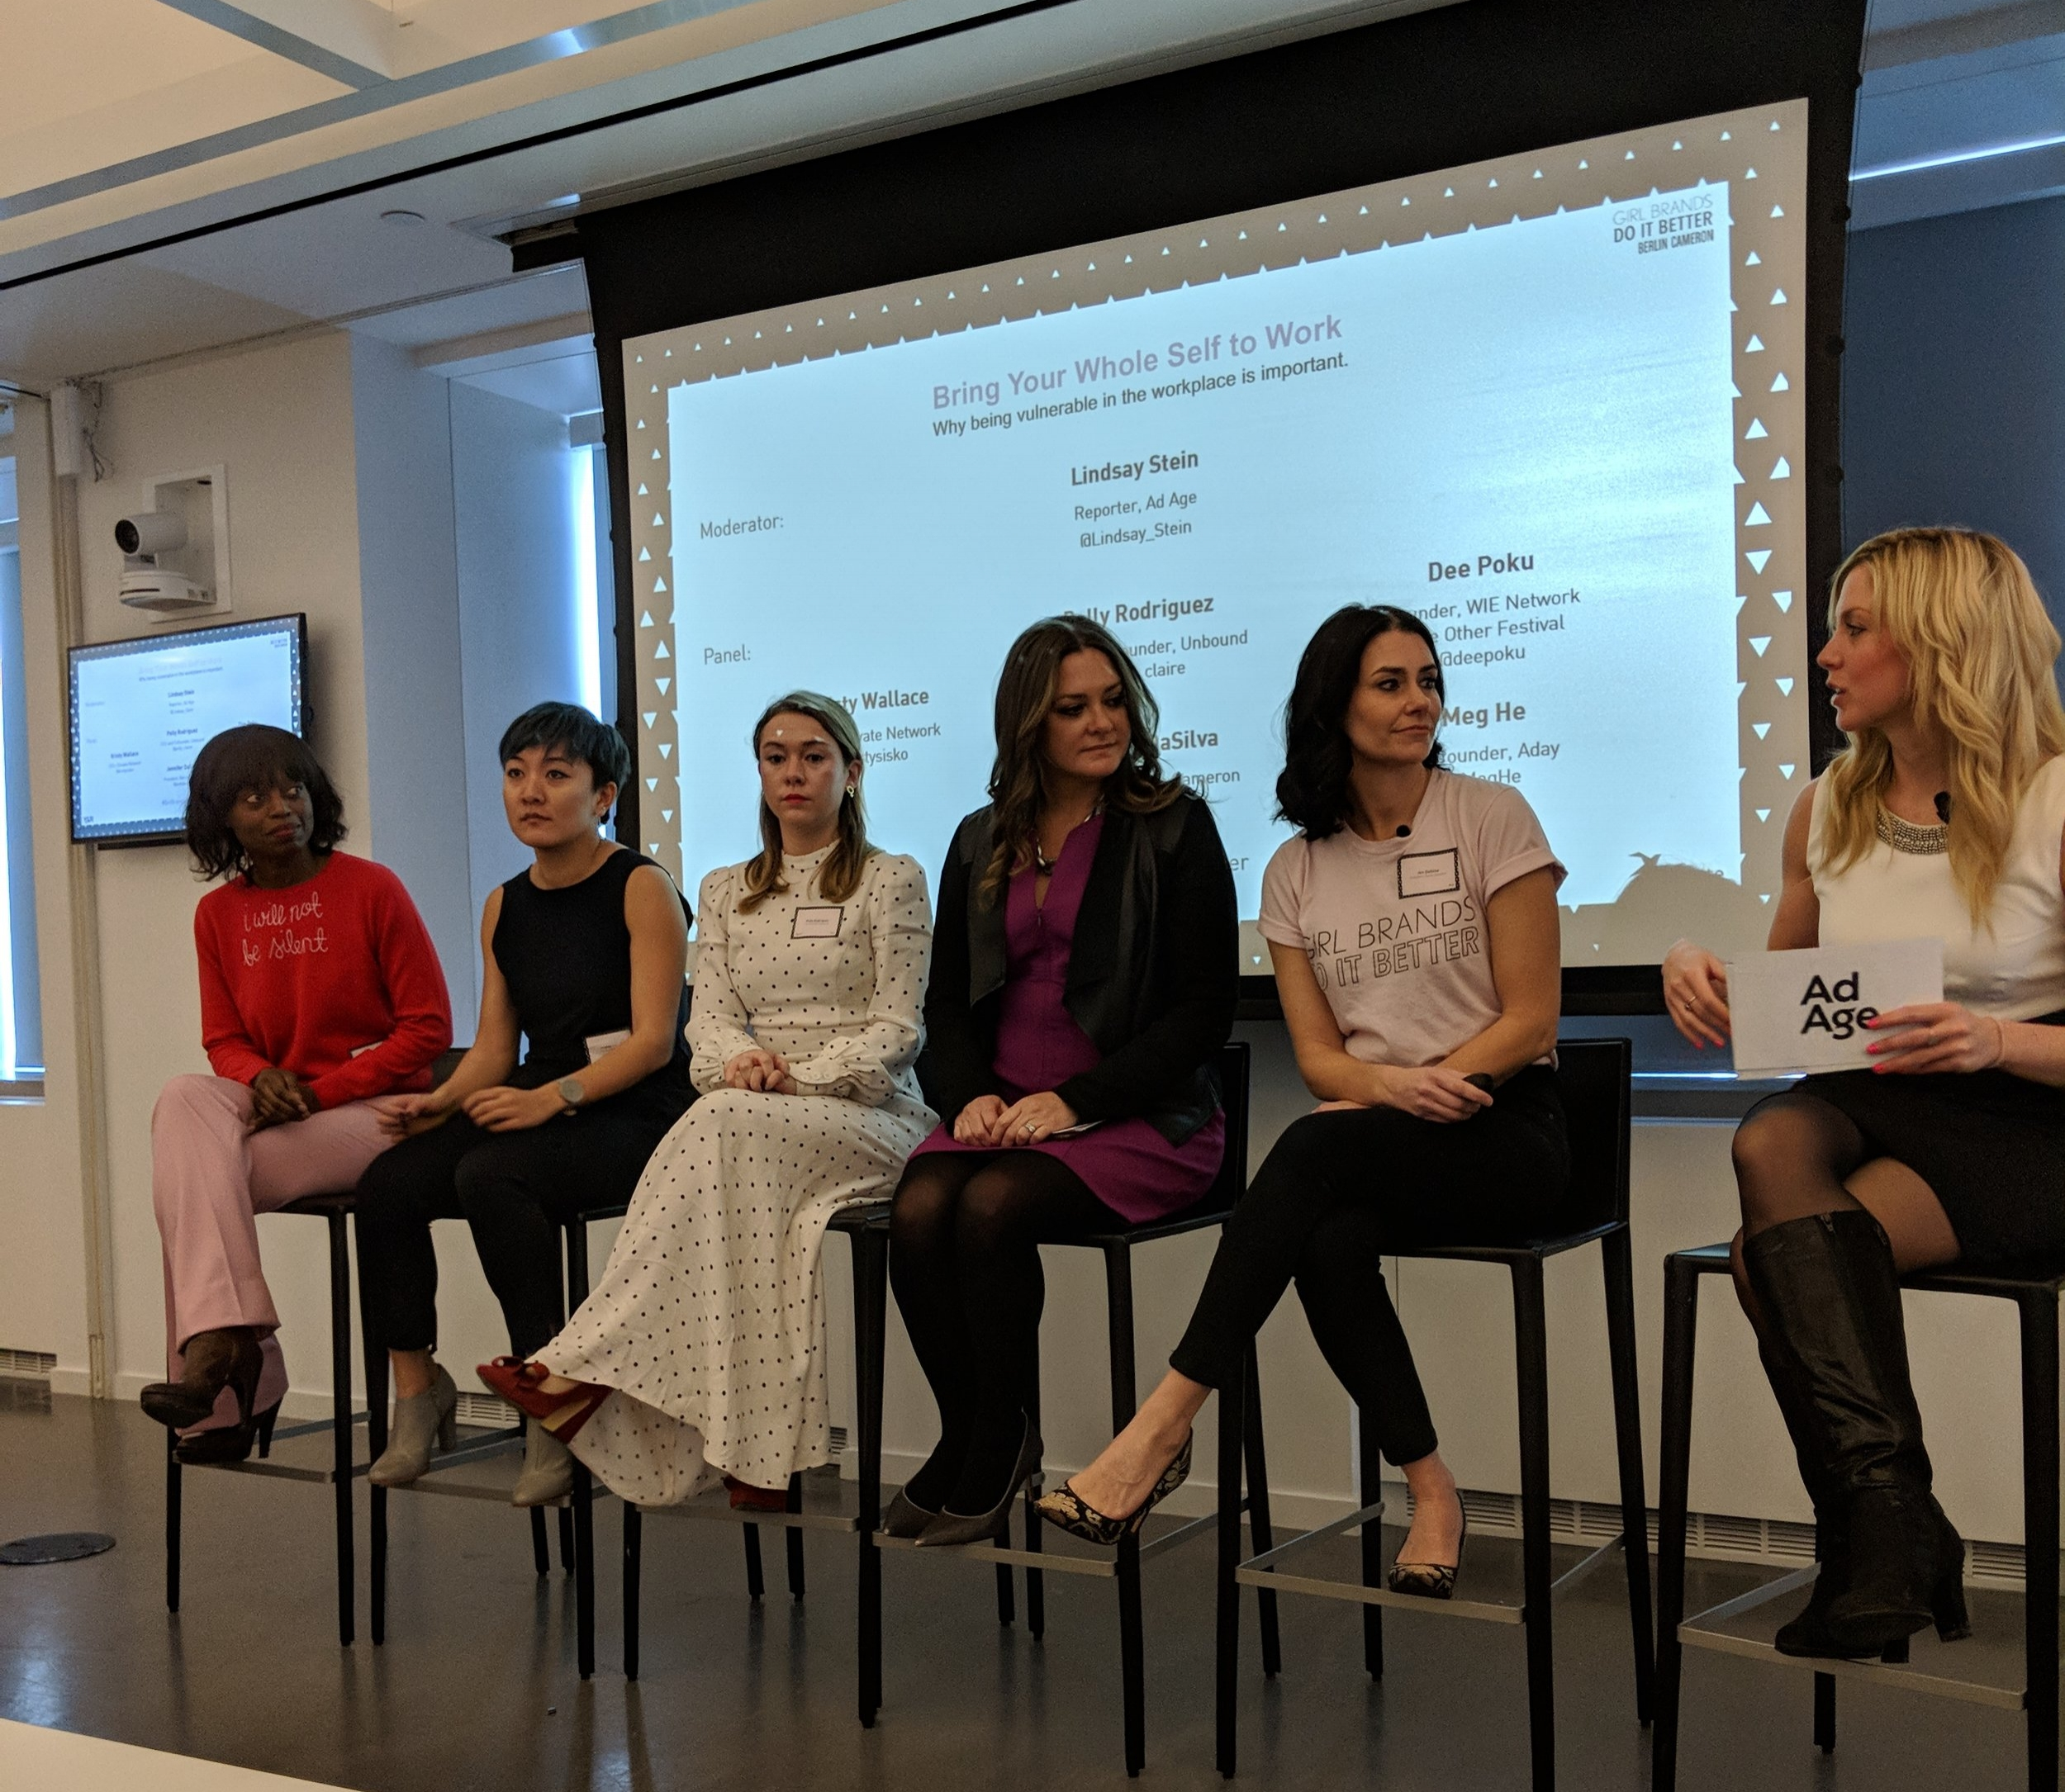 At Berlin Cameron's Girl Brands Do It Better. L to R. Dee Poku, Meg He, Polly Rodriguez, Kristy Wallace, Jennifer DaSilva, Lindsay Stein